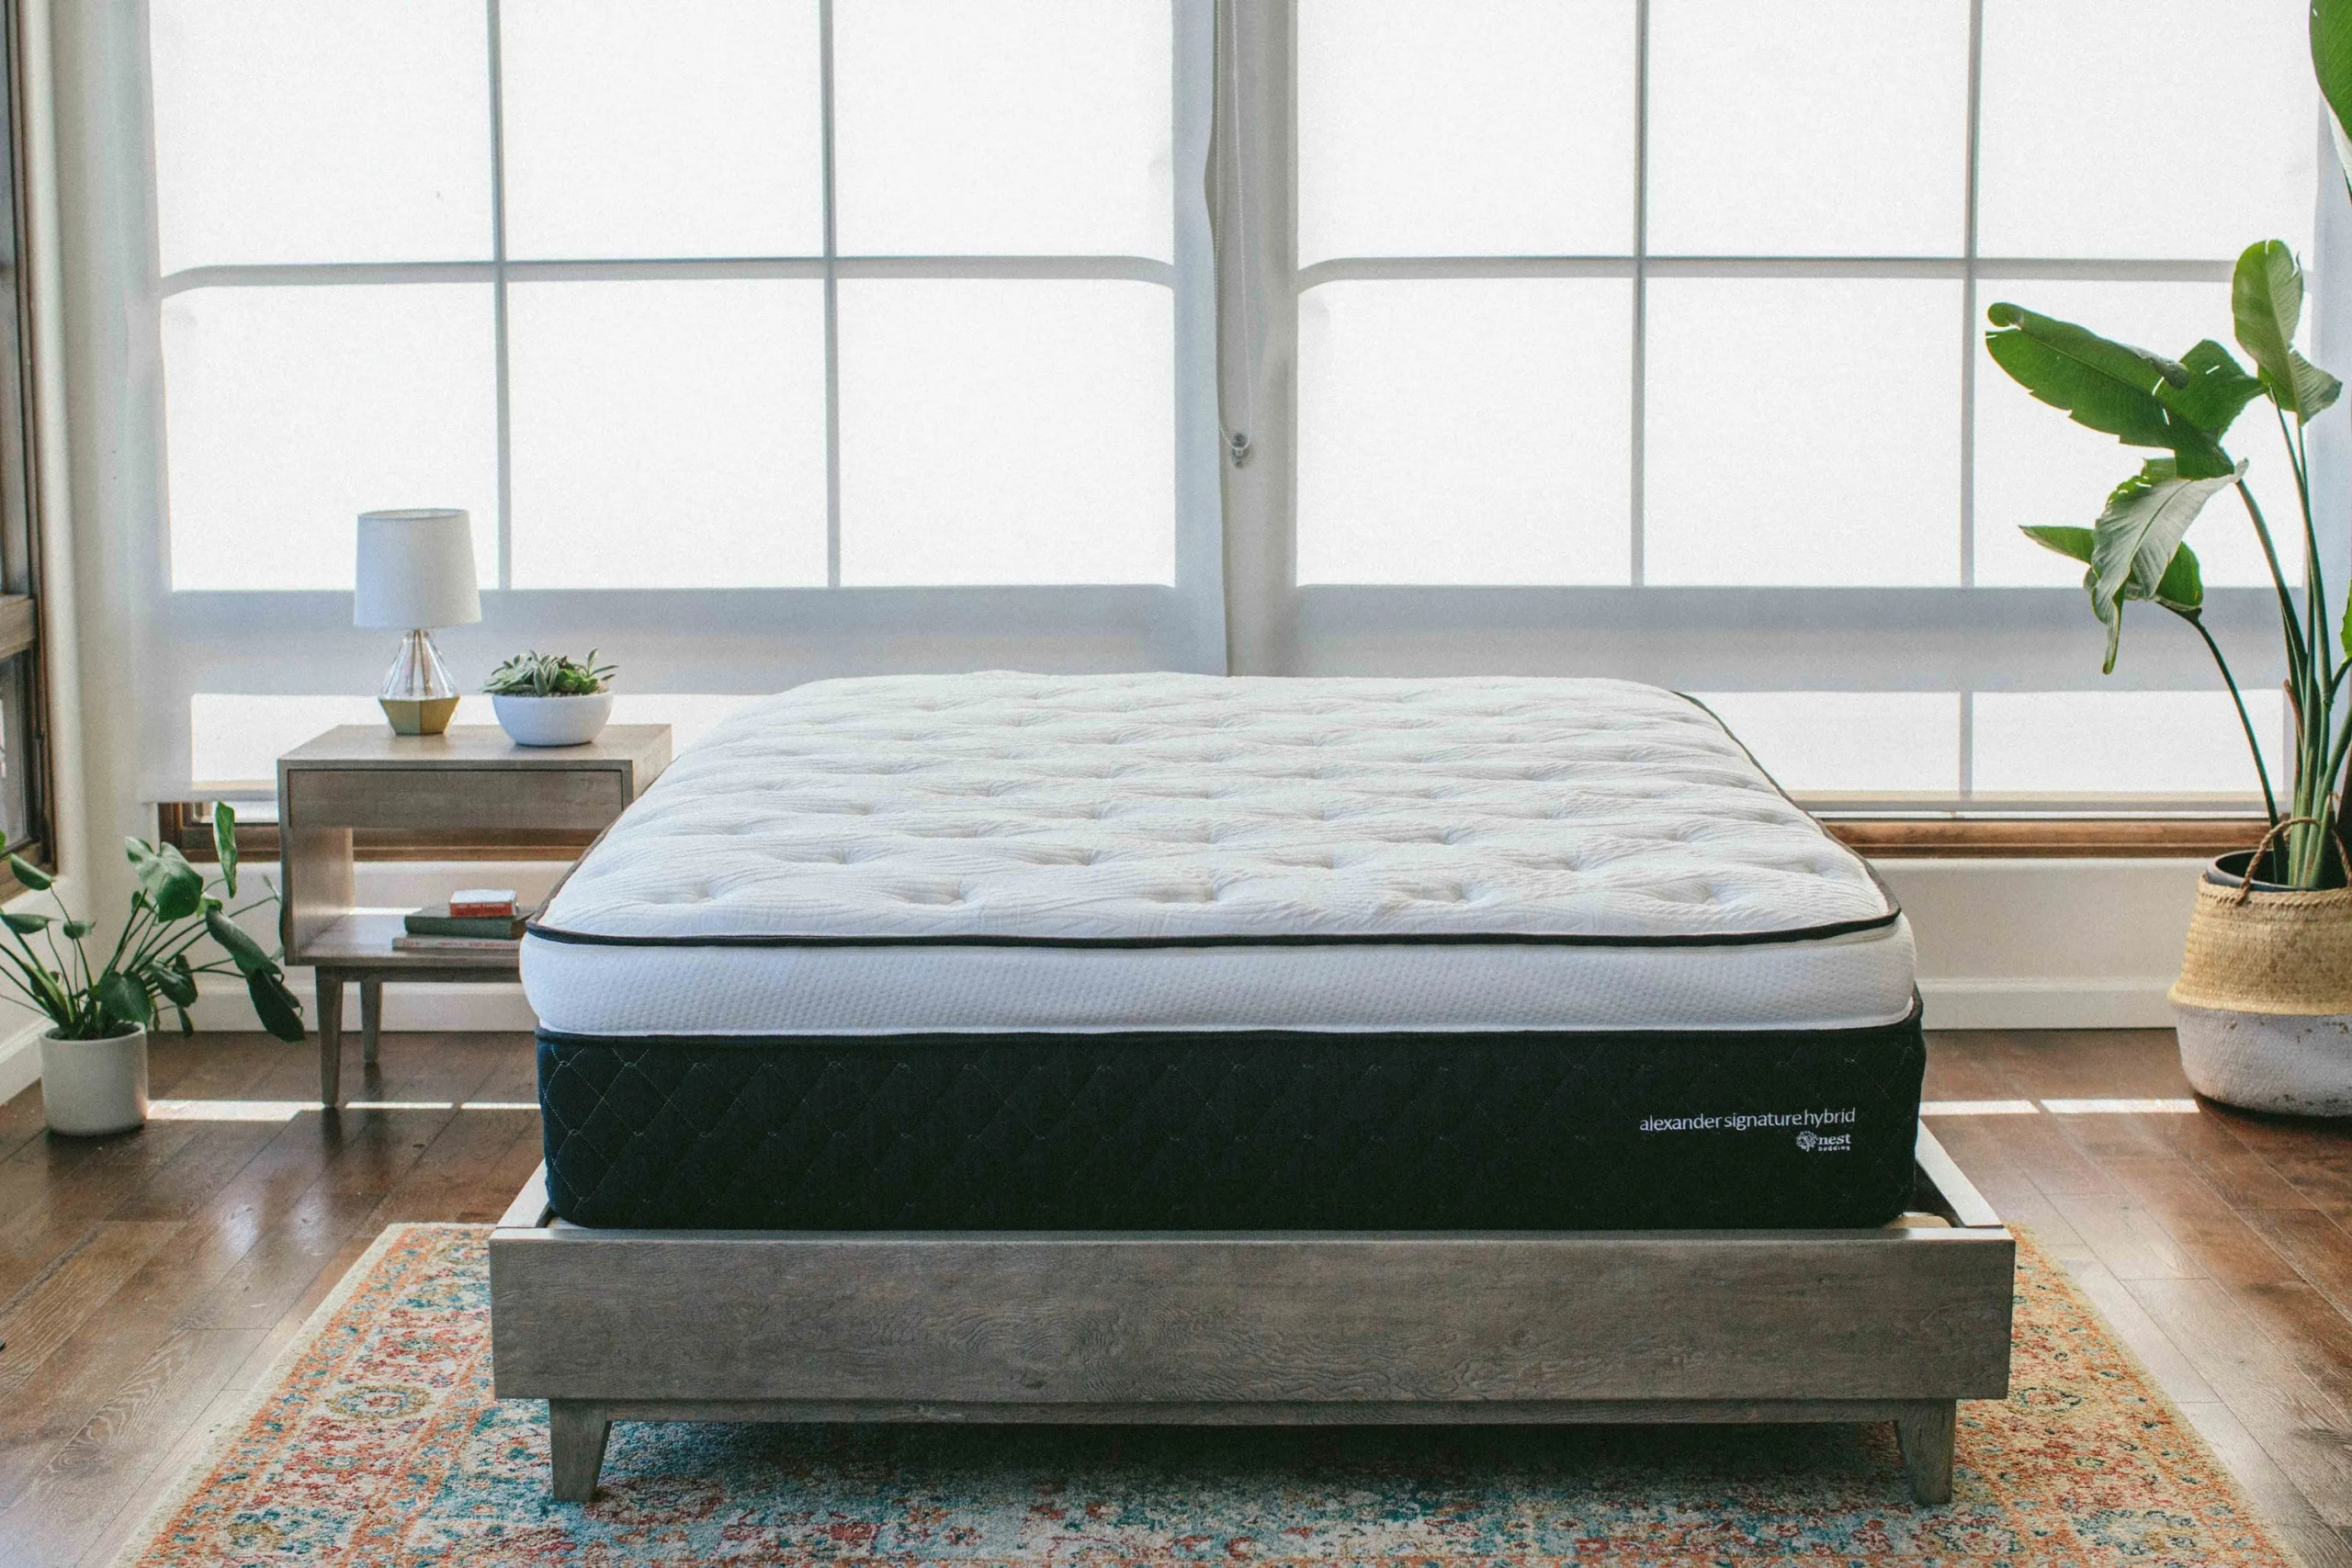 alexander signature mattress nest bedding vs brooklyn bedding